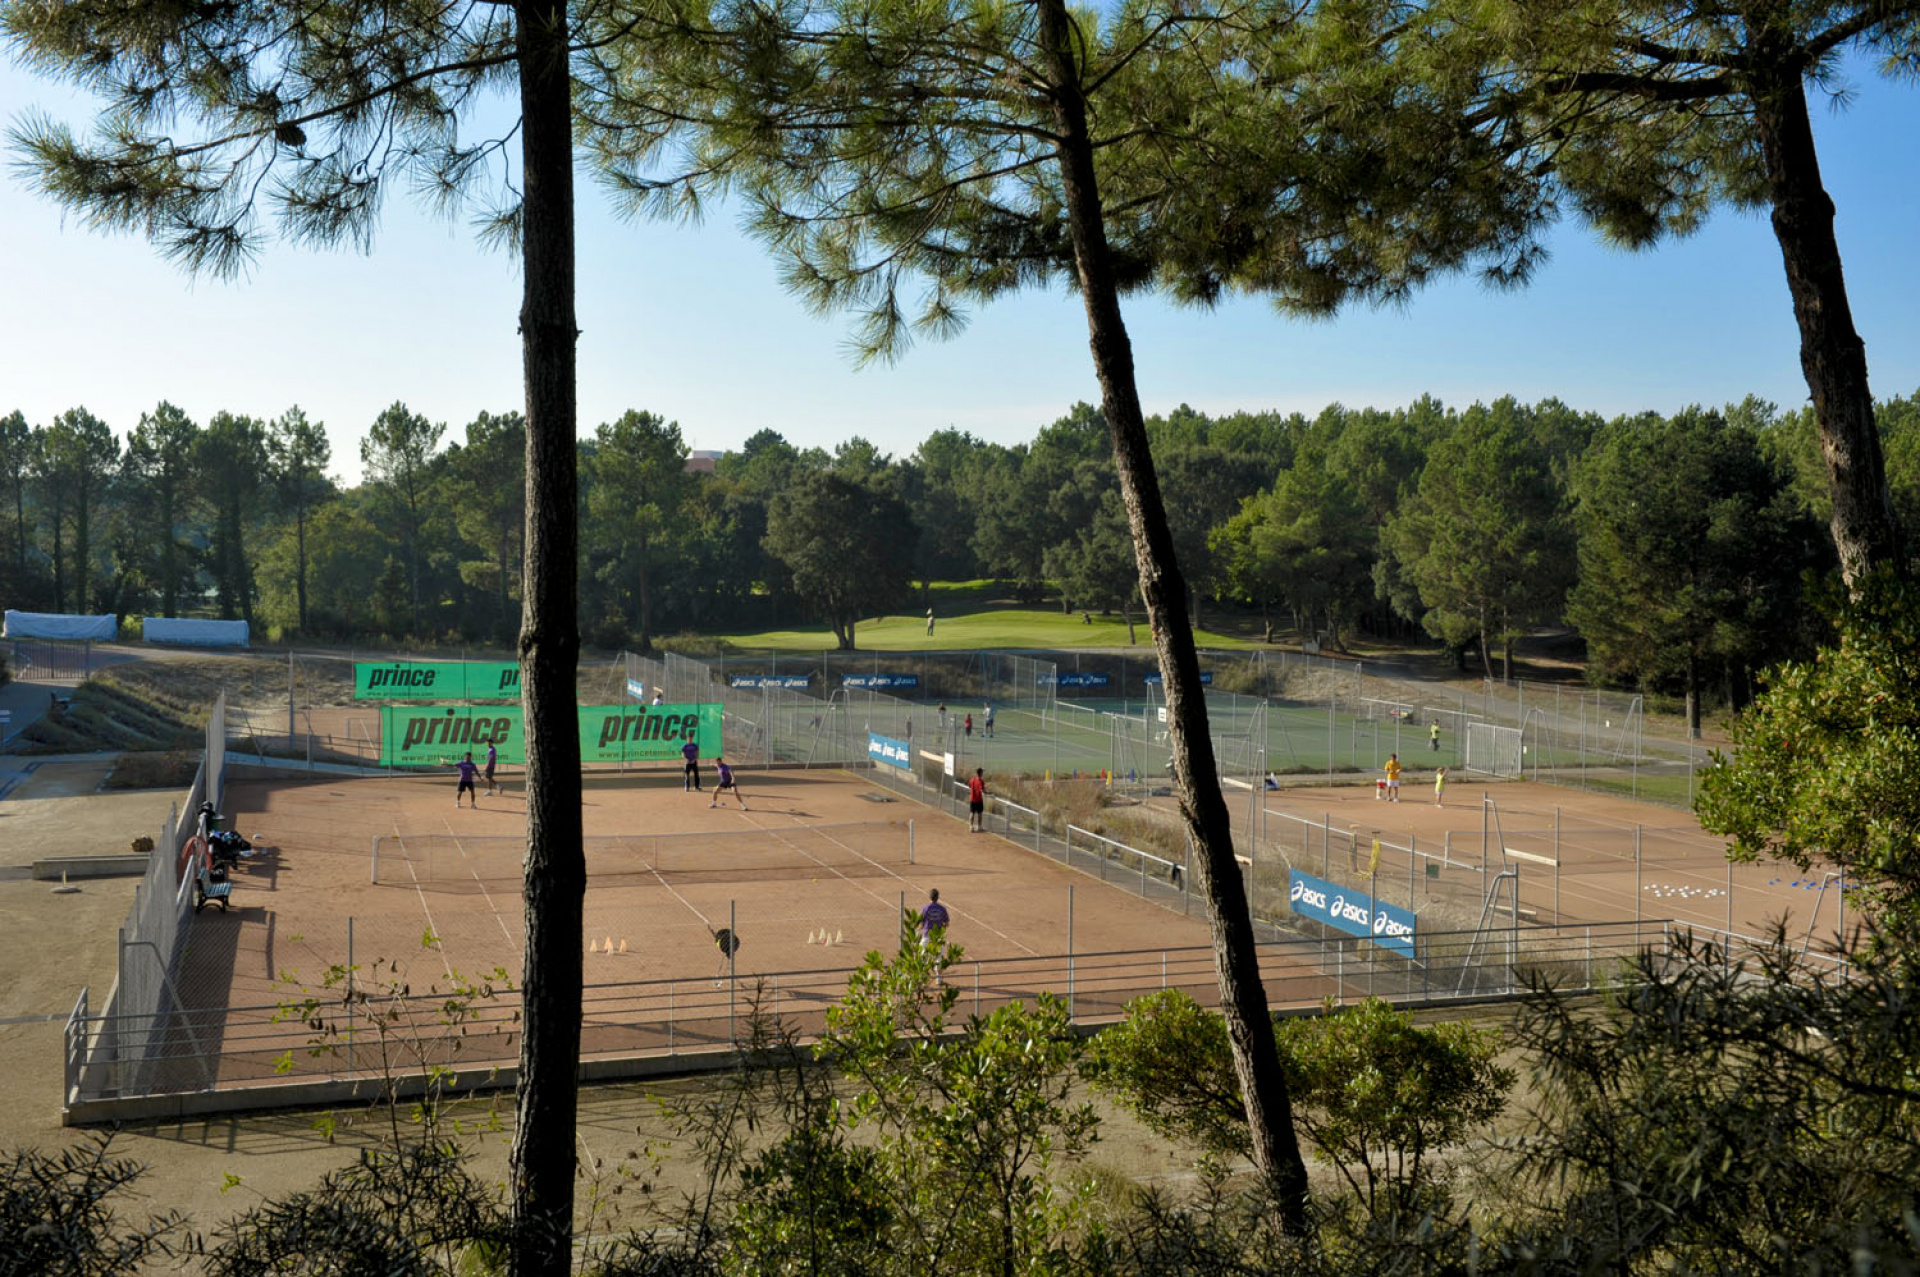 Location de Court de tennis en terre battue à Moliets Du tennis de Moliets qui propose la location de courts à l'heure en dur, green-set, terre-battue, gazon couverts ou extérieurs. Des stages tennis pour tout public de Académie et Tennis Club de Moli